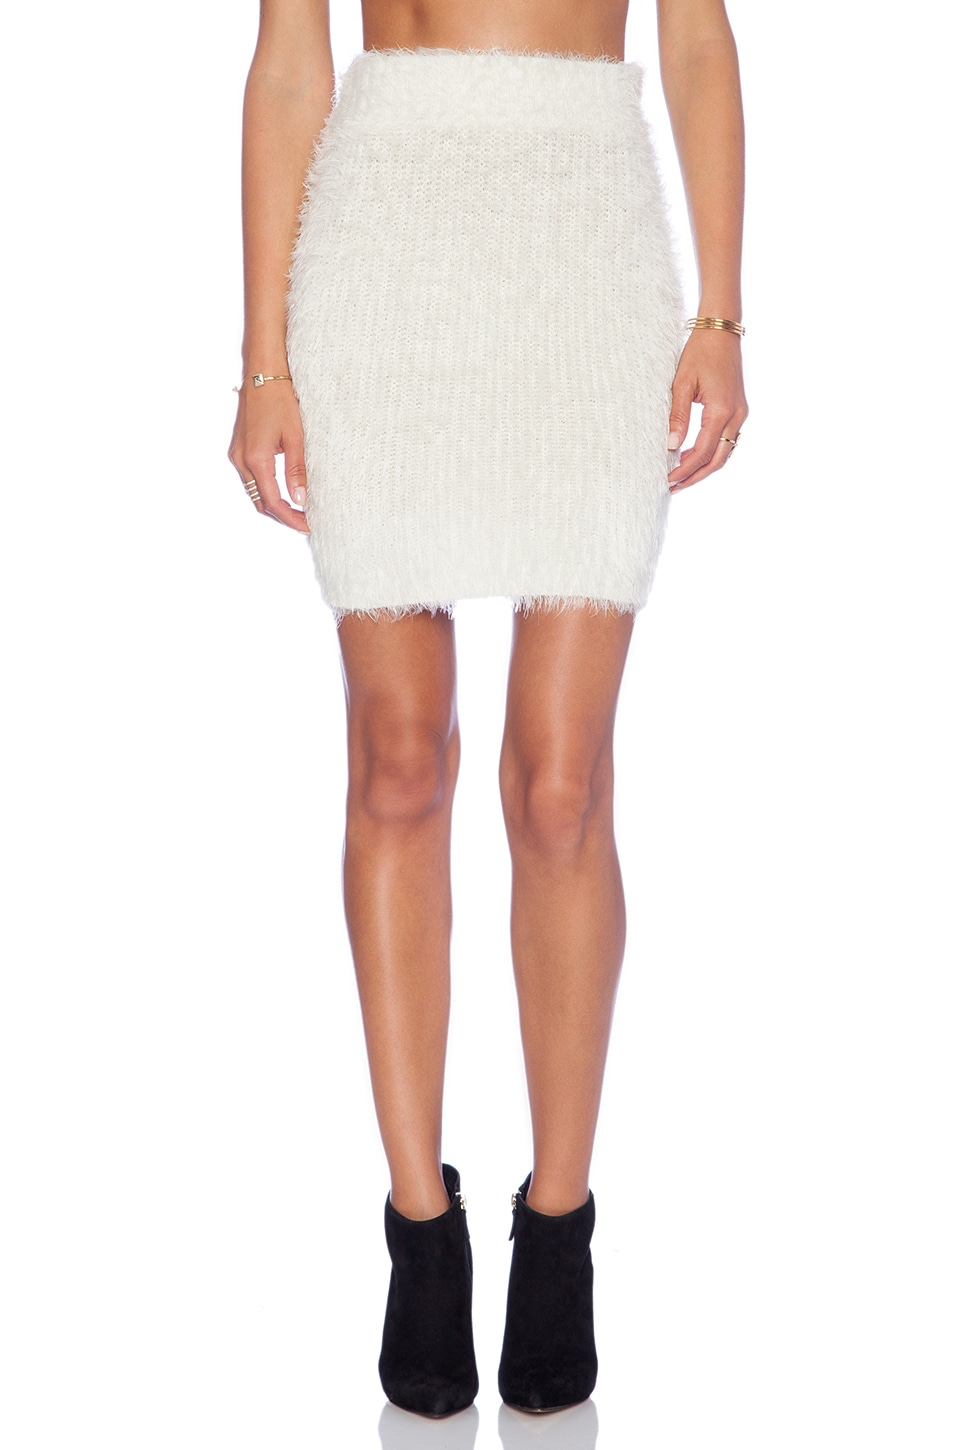 Lovers + Friends x REVOLVE Dolly Skirt in Ivory